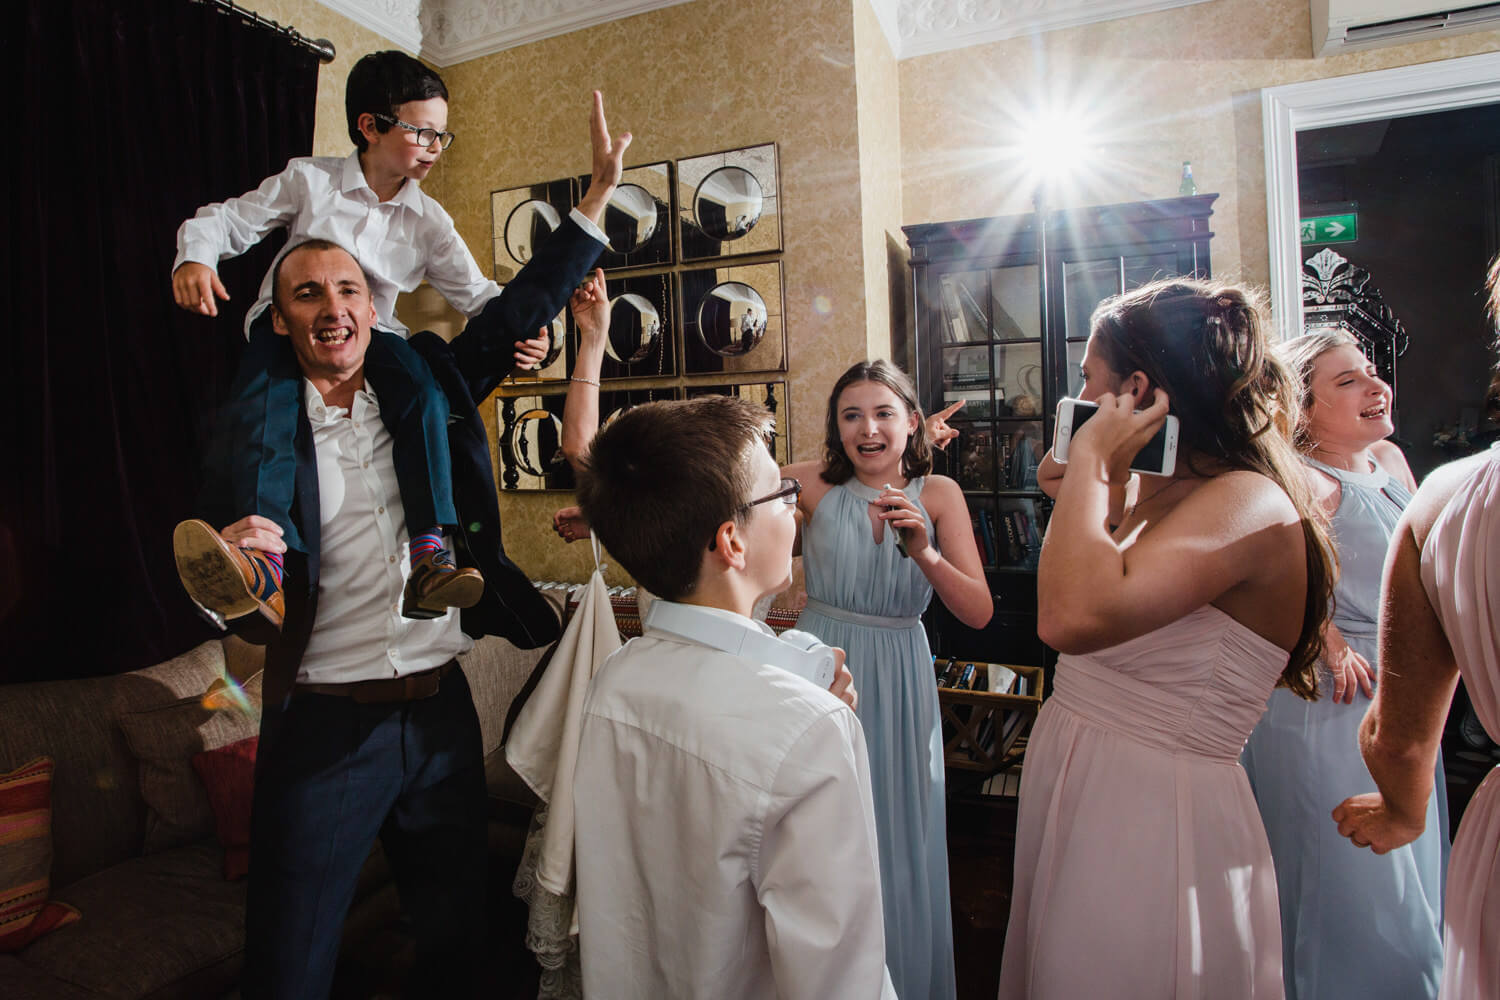 camera flash adds contrast to groom dancing with bridesmaids and page boy